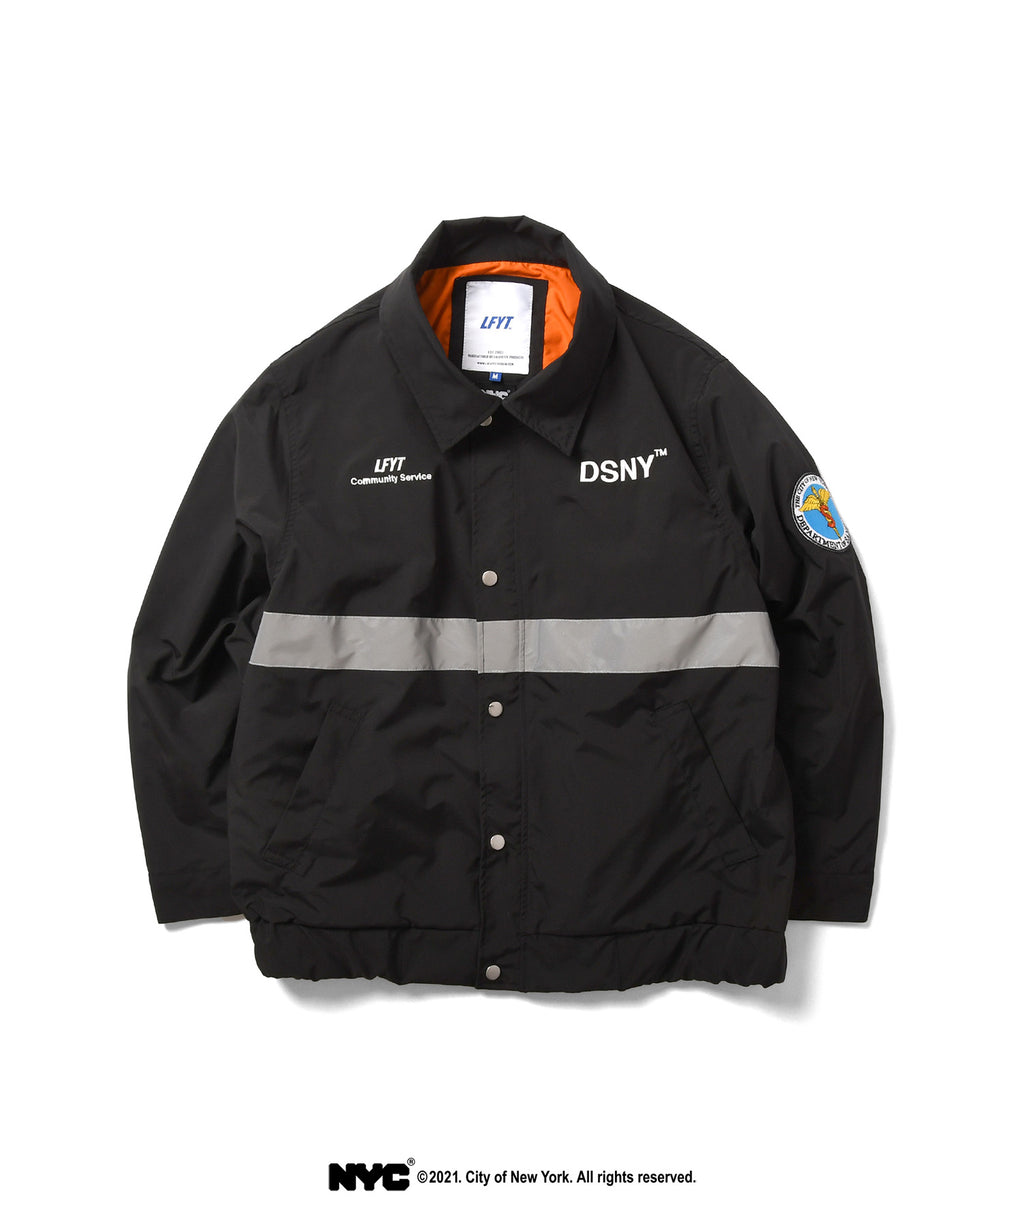 LFYT X DSNY COMMUNITY SERVICES WORKER JACKET LS211003 BLACK